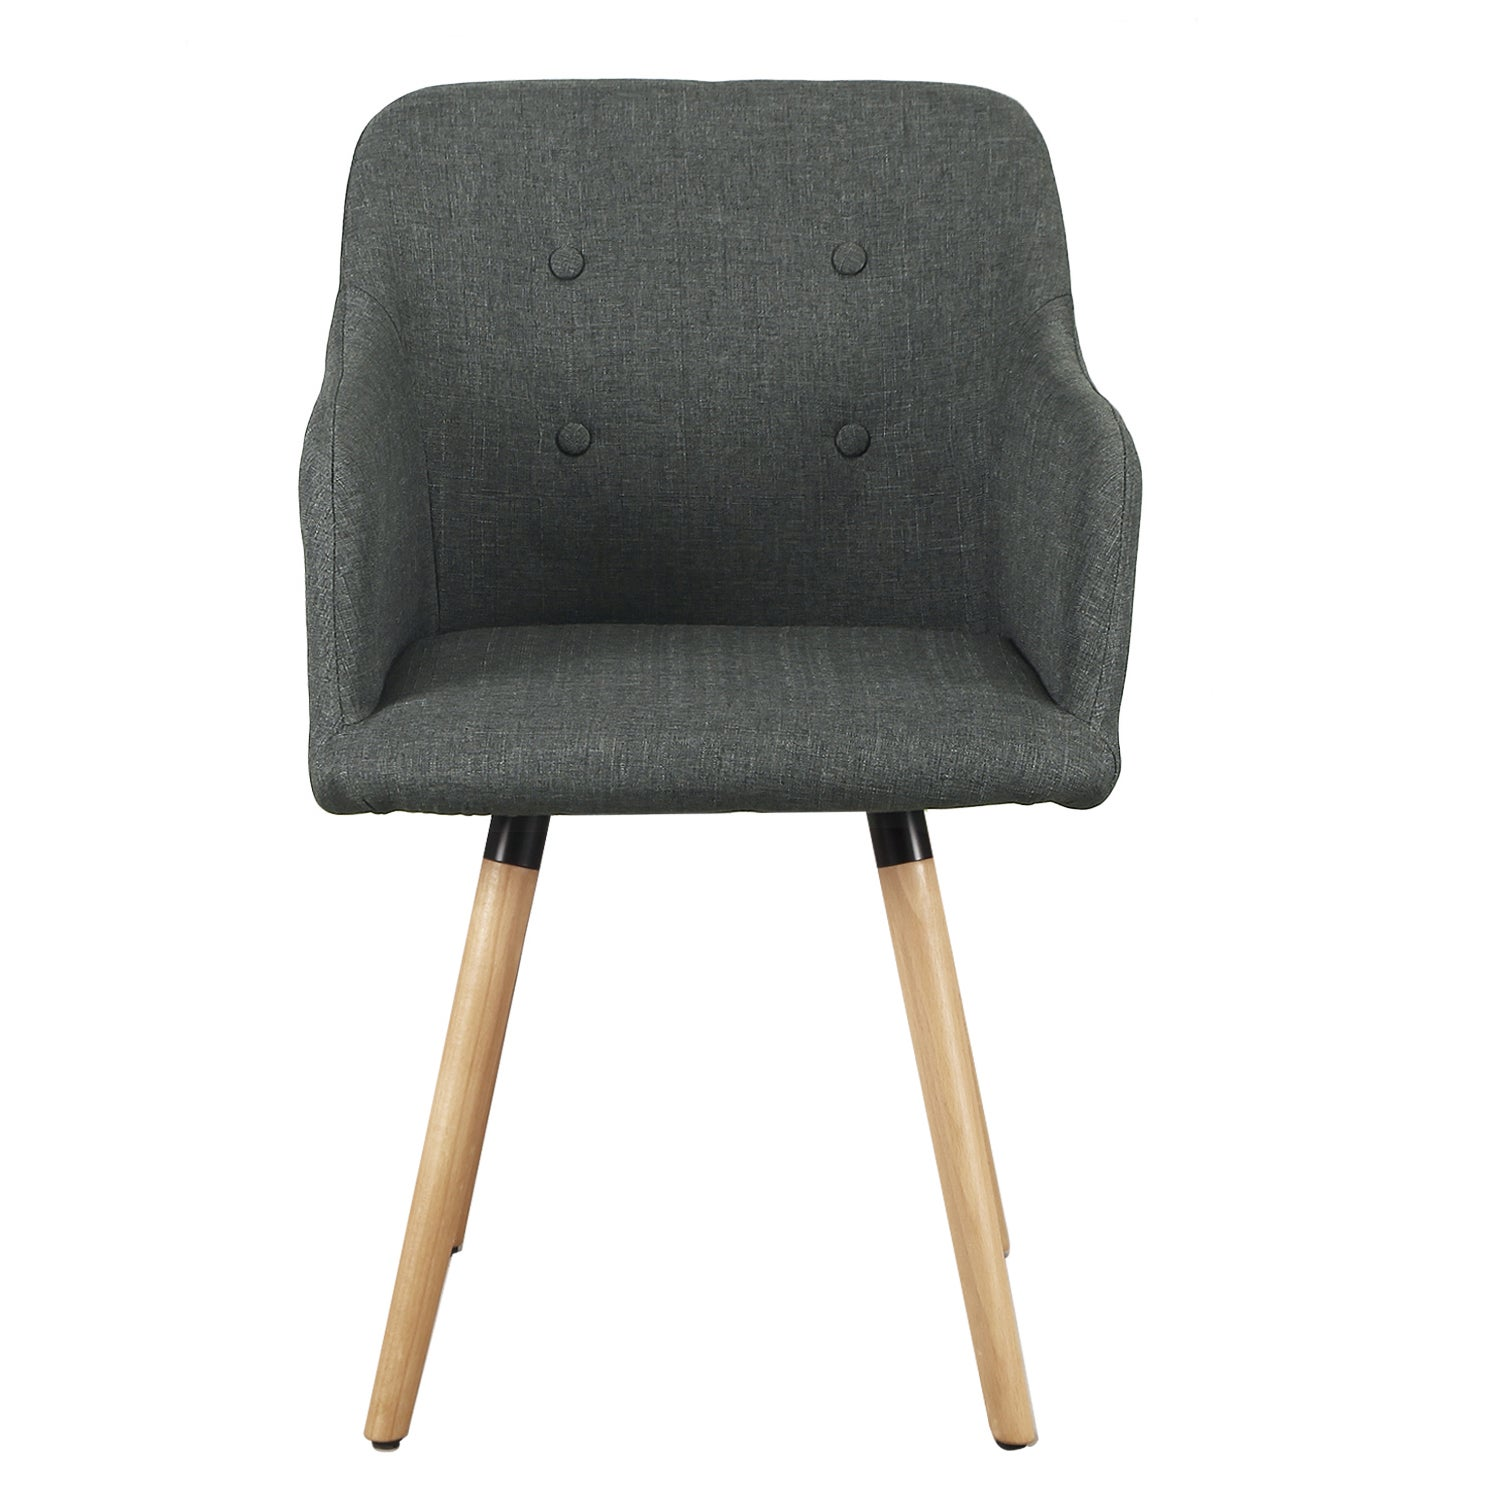 Beau Shop Fabric Durable Leisure Chair With Buttons And Wood Leg   Free Shipping  Today   Overstock.com   13002995